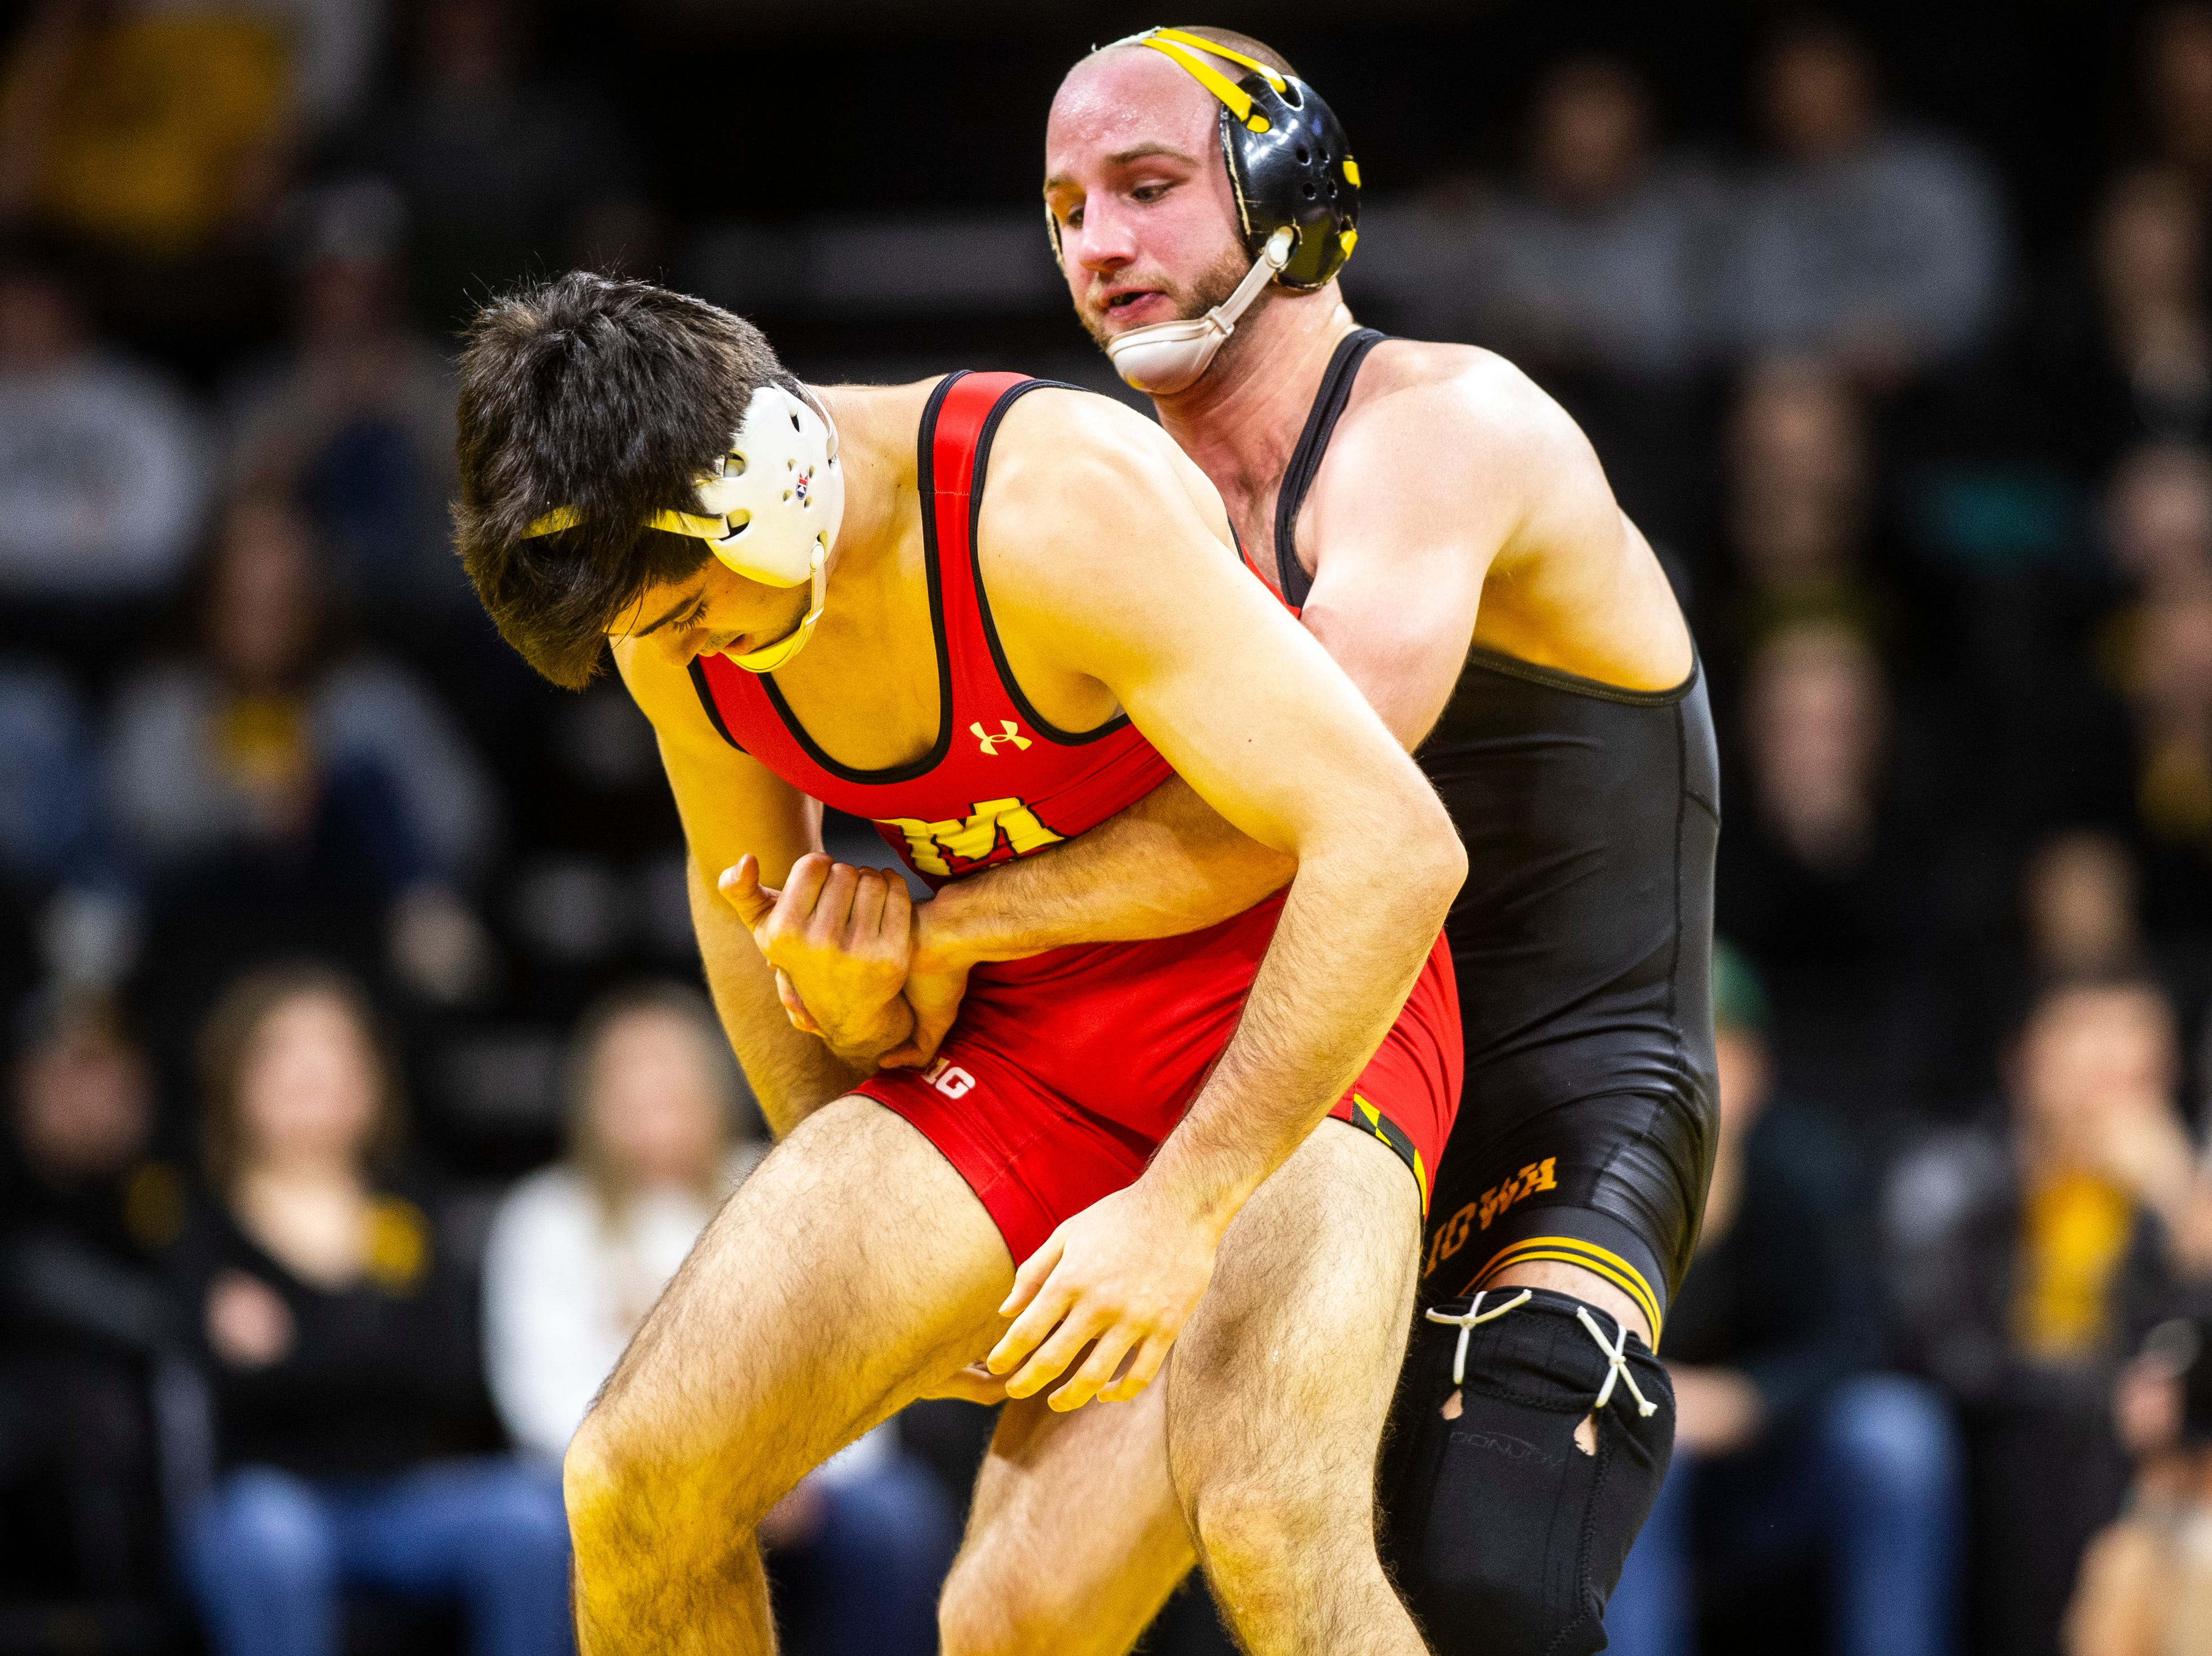 Iowa's Alex Marinelli, right, wrestles Maryland's Philip Spadafora at 165 during a NCAA Big Ten Conference wrestling dual on Friday, Feb. 8, 2019 at Carver-Hawkeye Arena in Iowa City, Iowa.